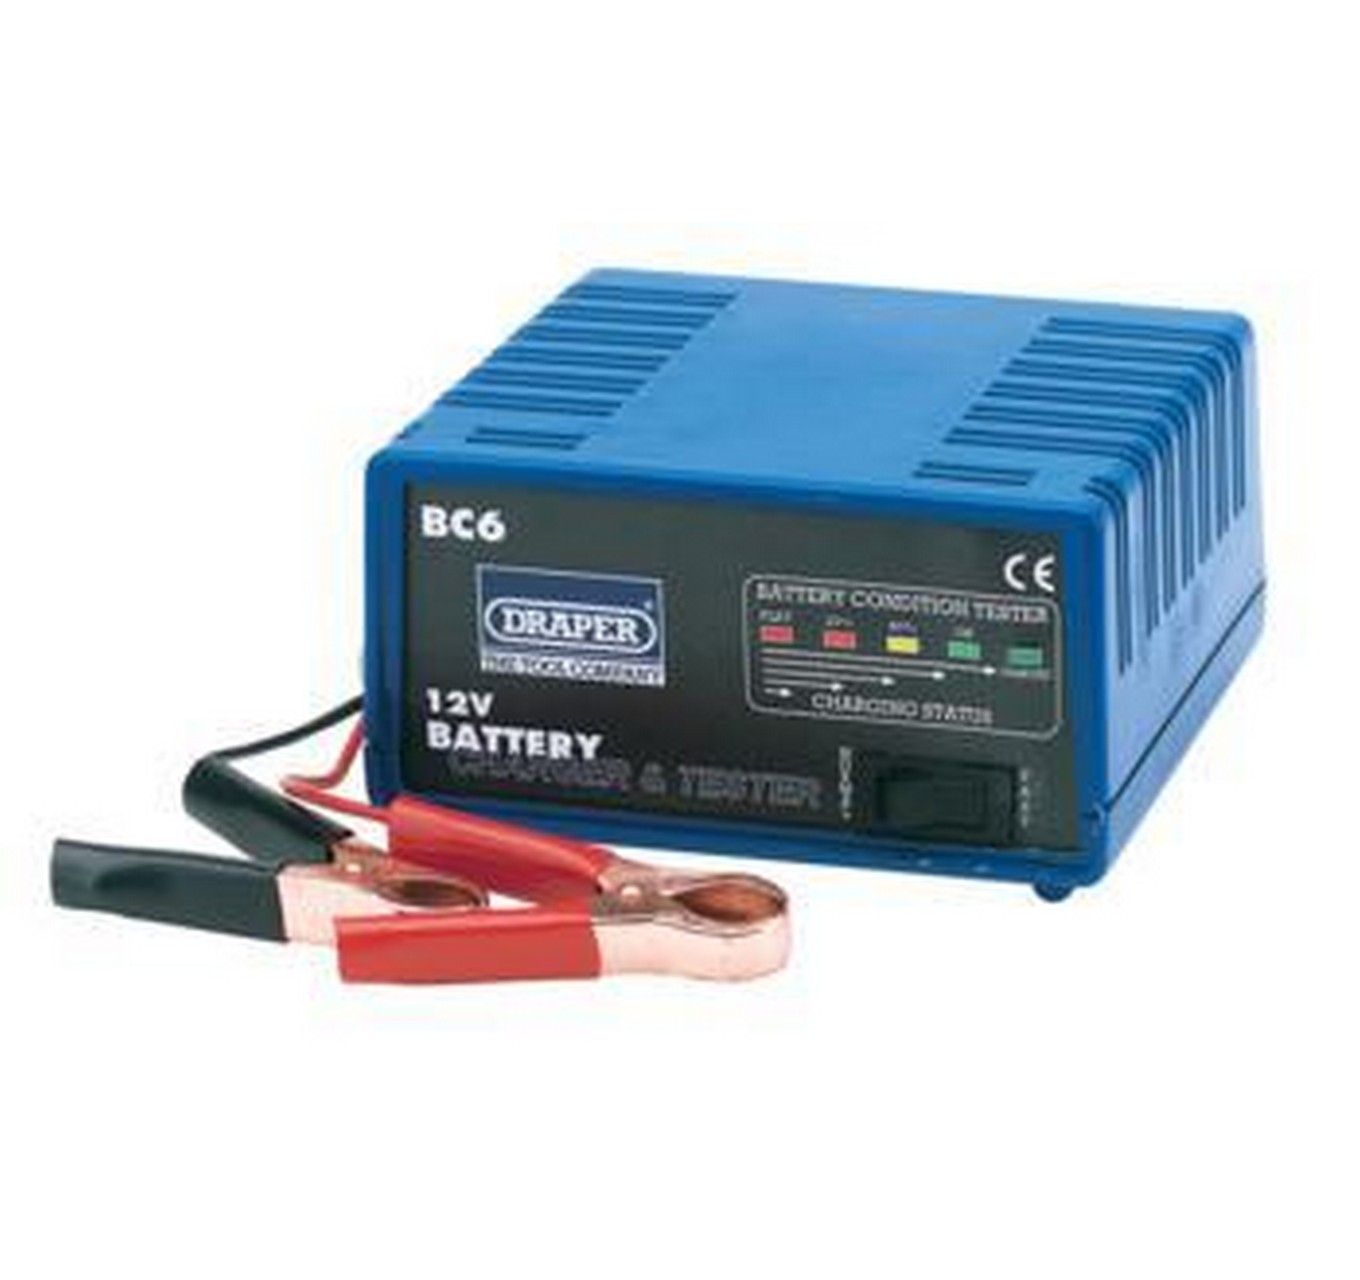 12v 6A Battery Charger/Tester